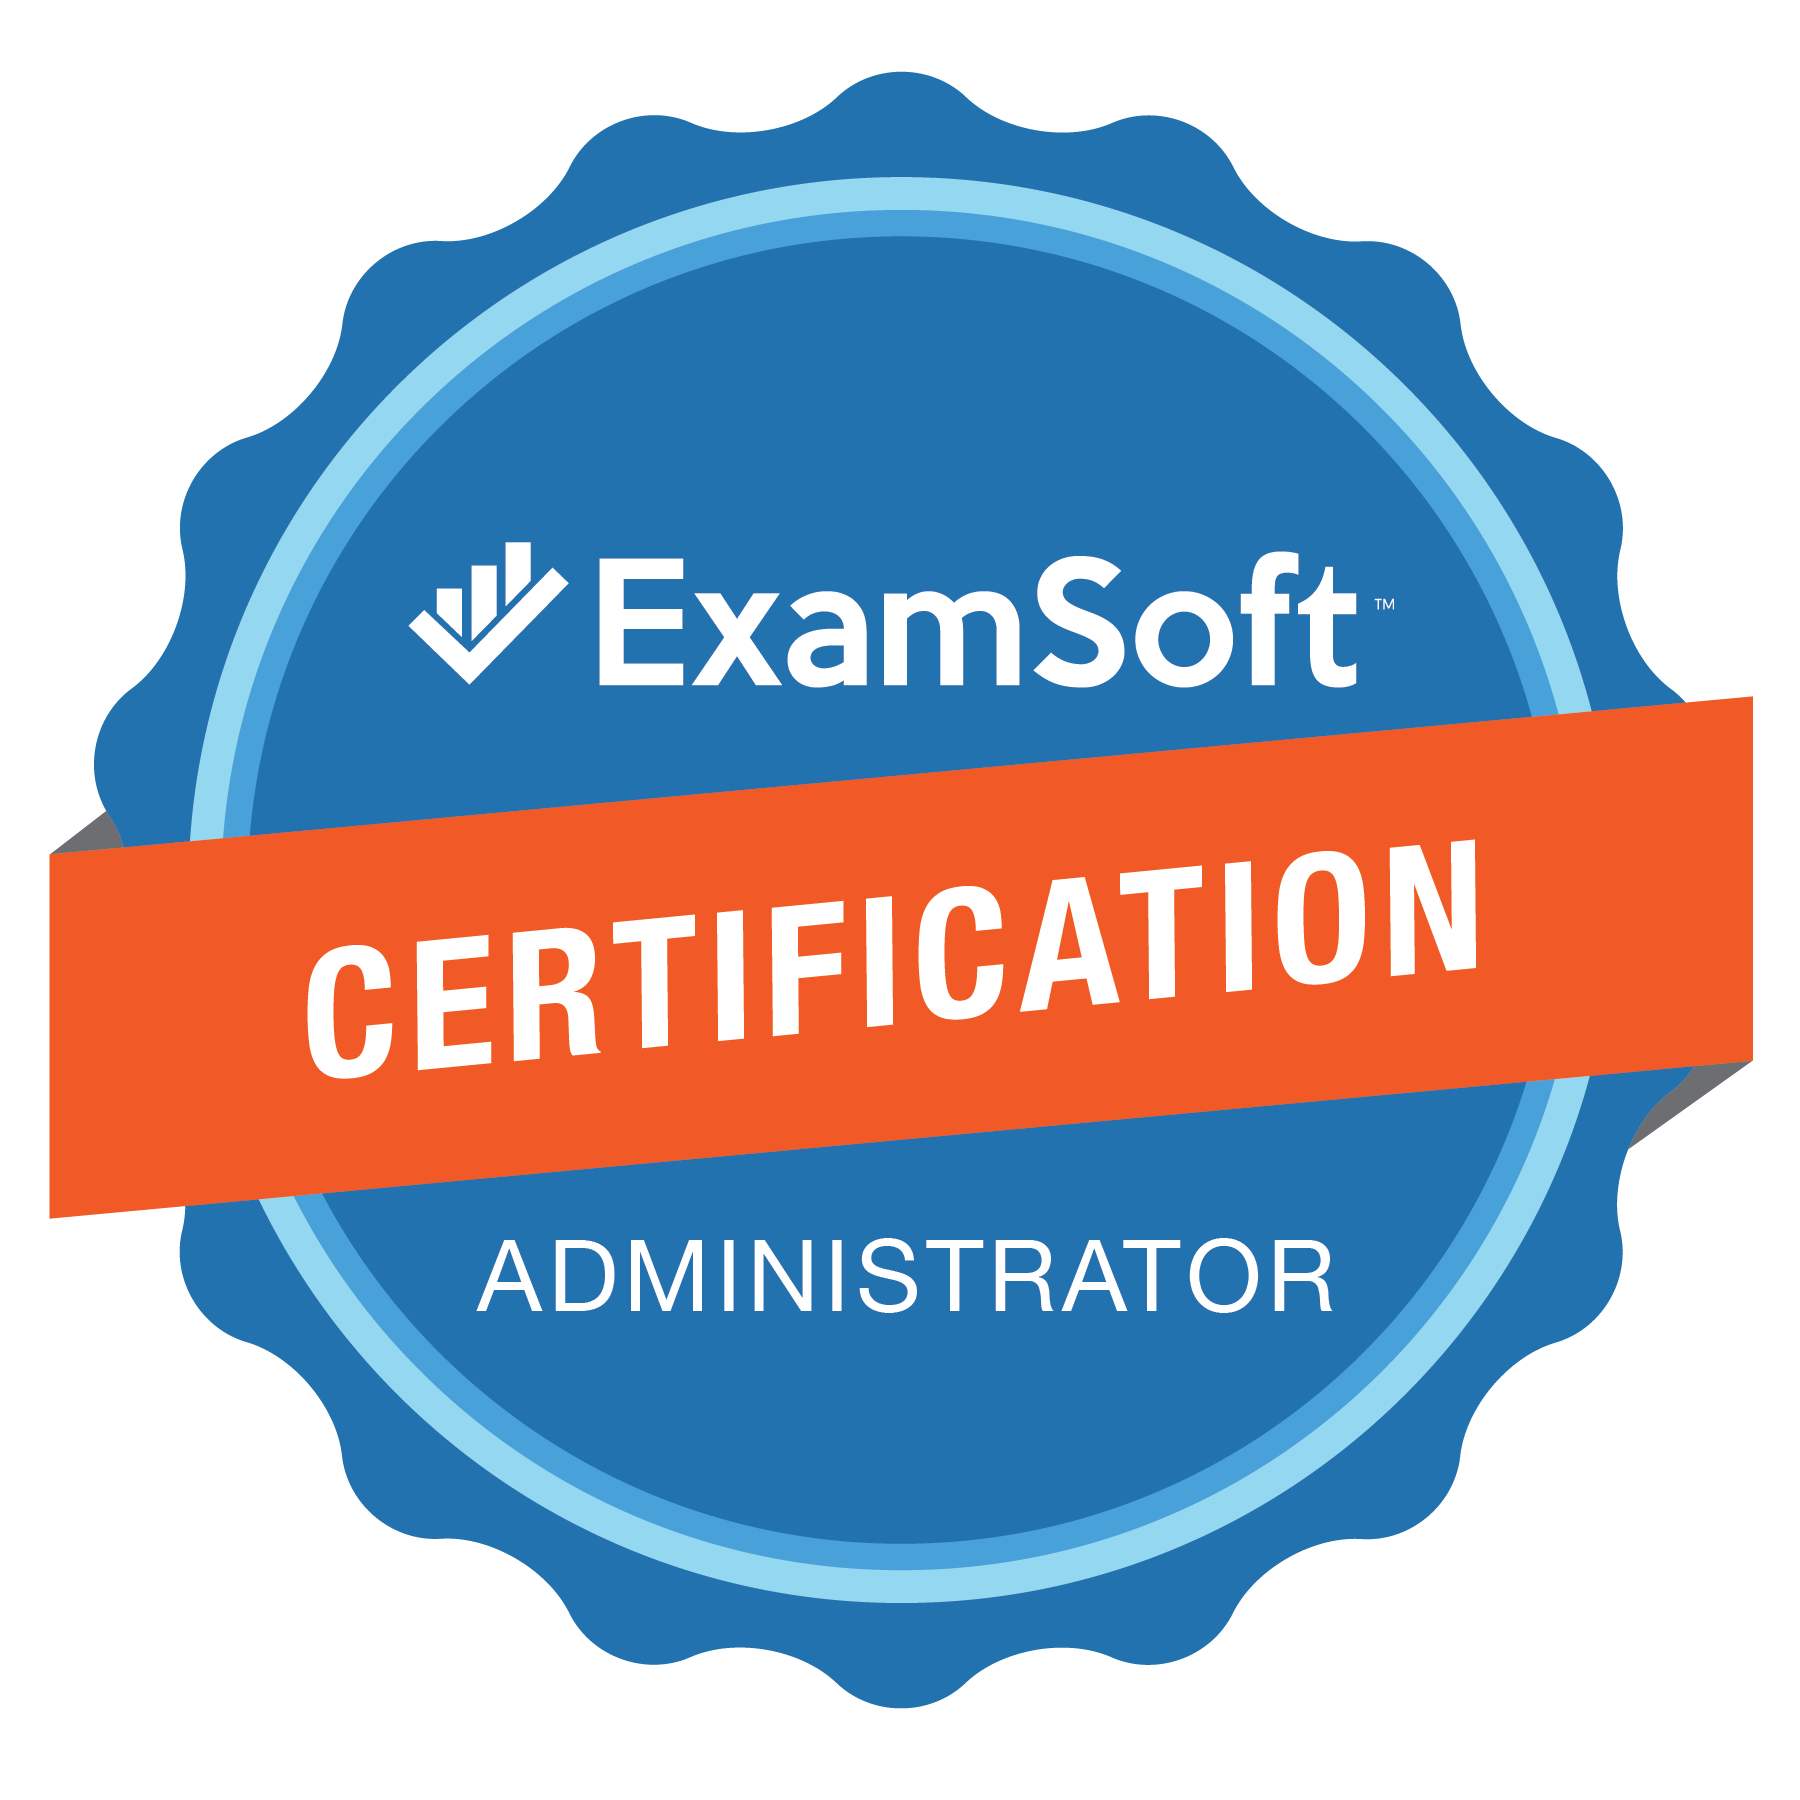 The ExamSoft Certification Administrator Program Badge